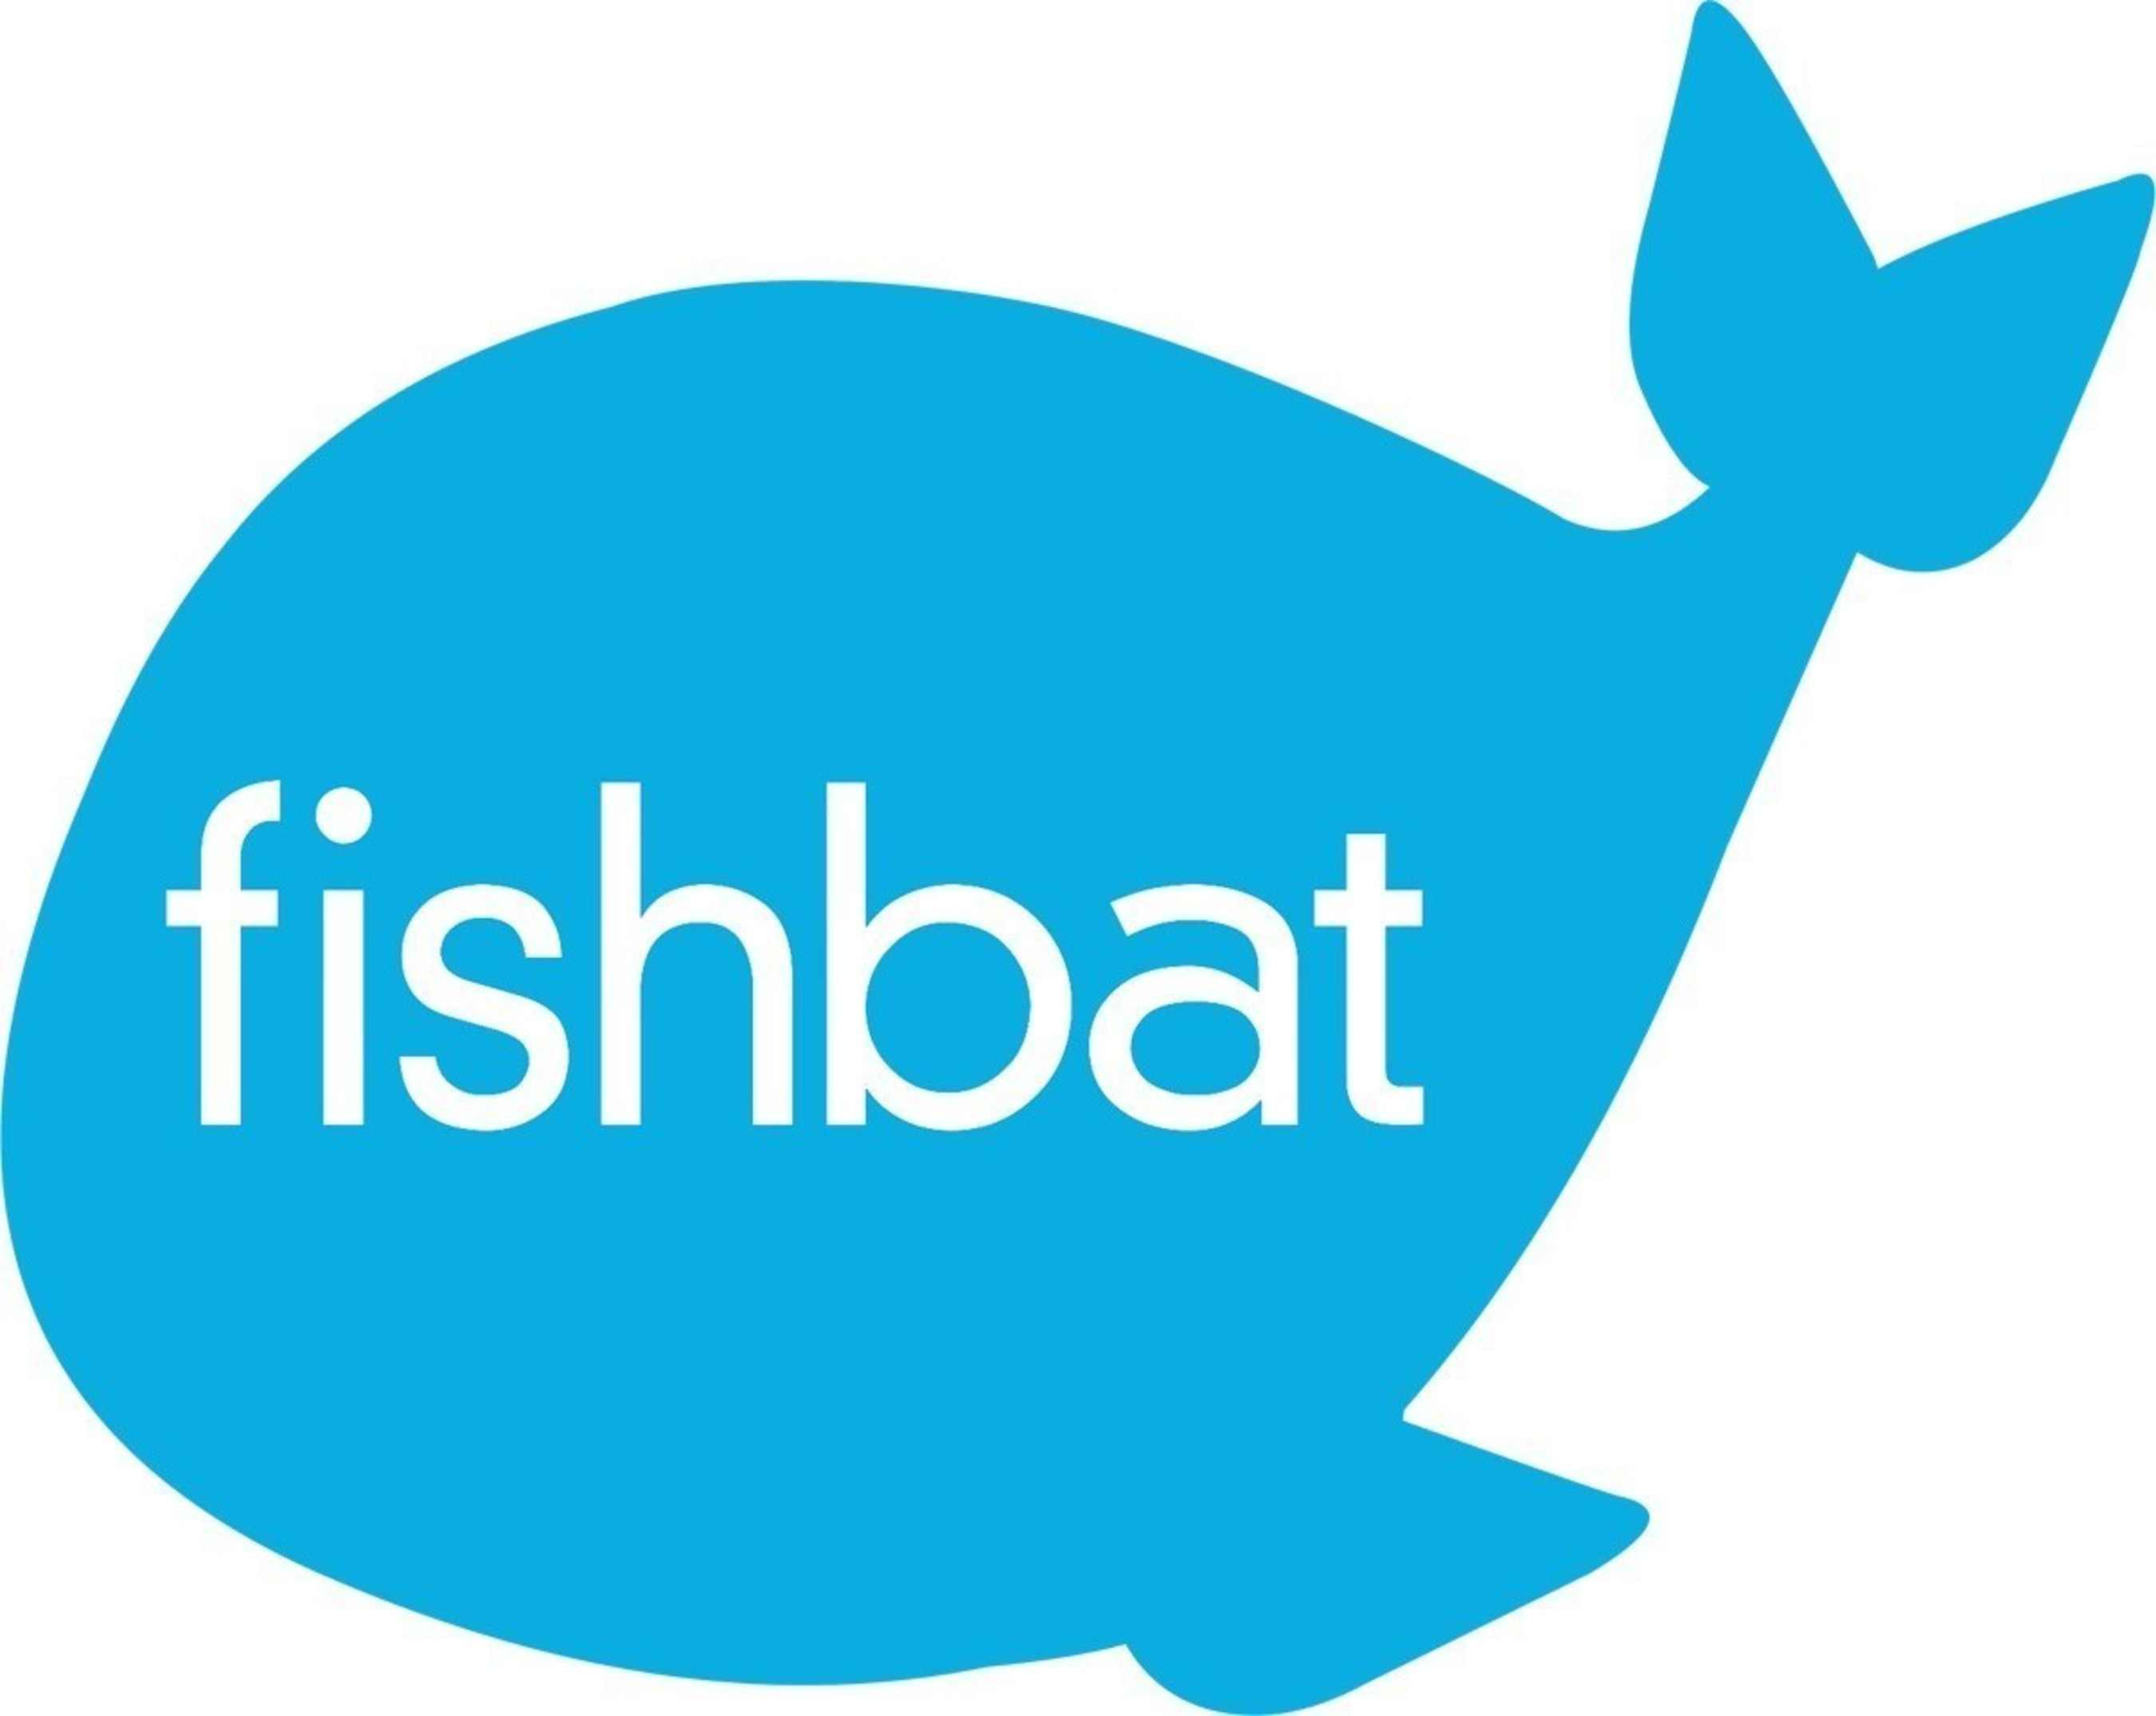 fishbat CEO Clay Darrohn Discusses 3 Ways Marketers Should Personalize the Online Experience for Consumers